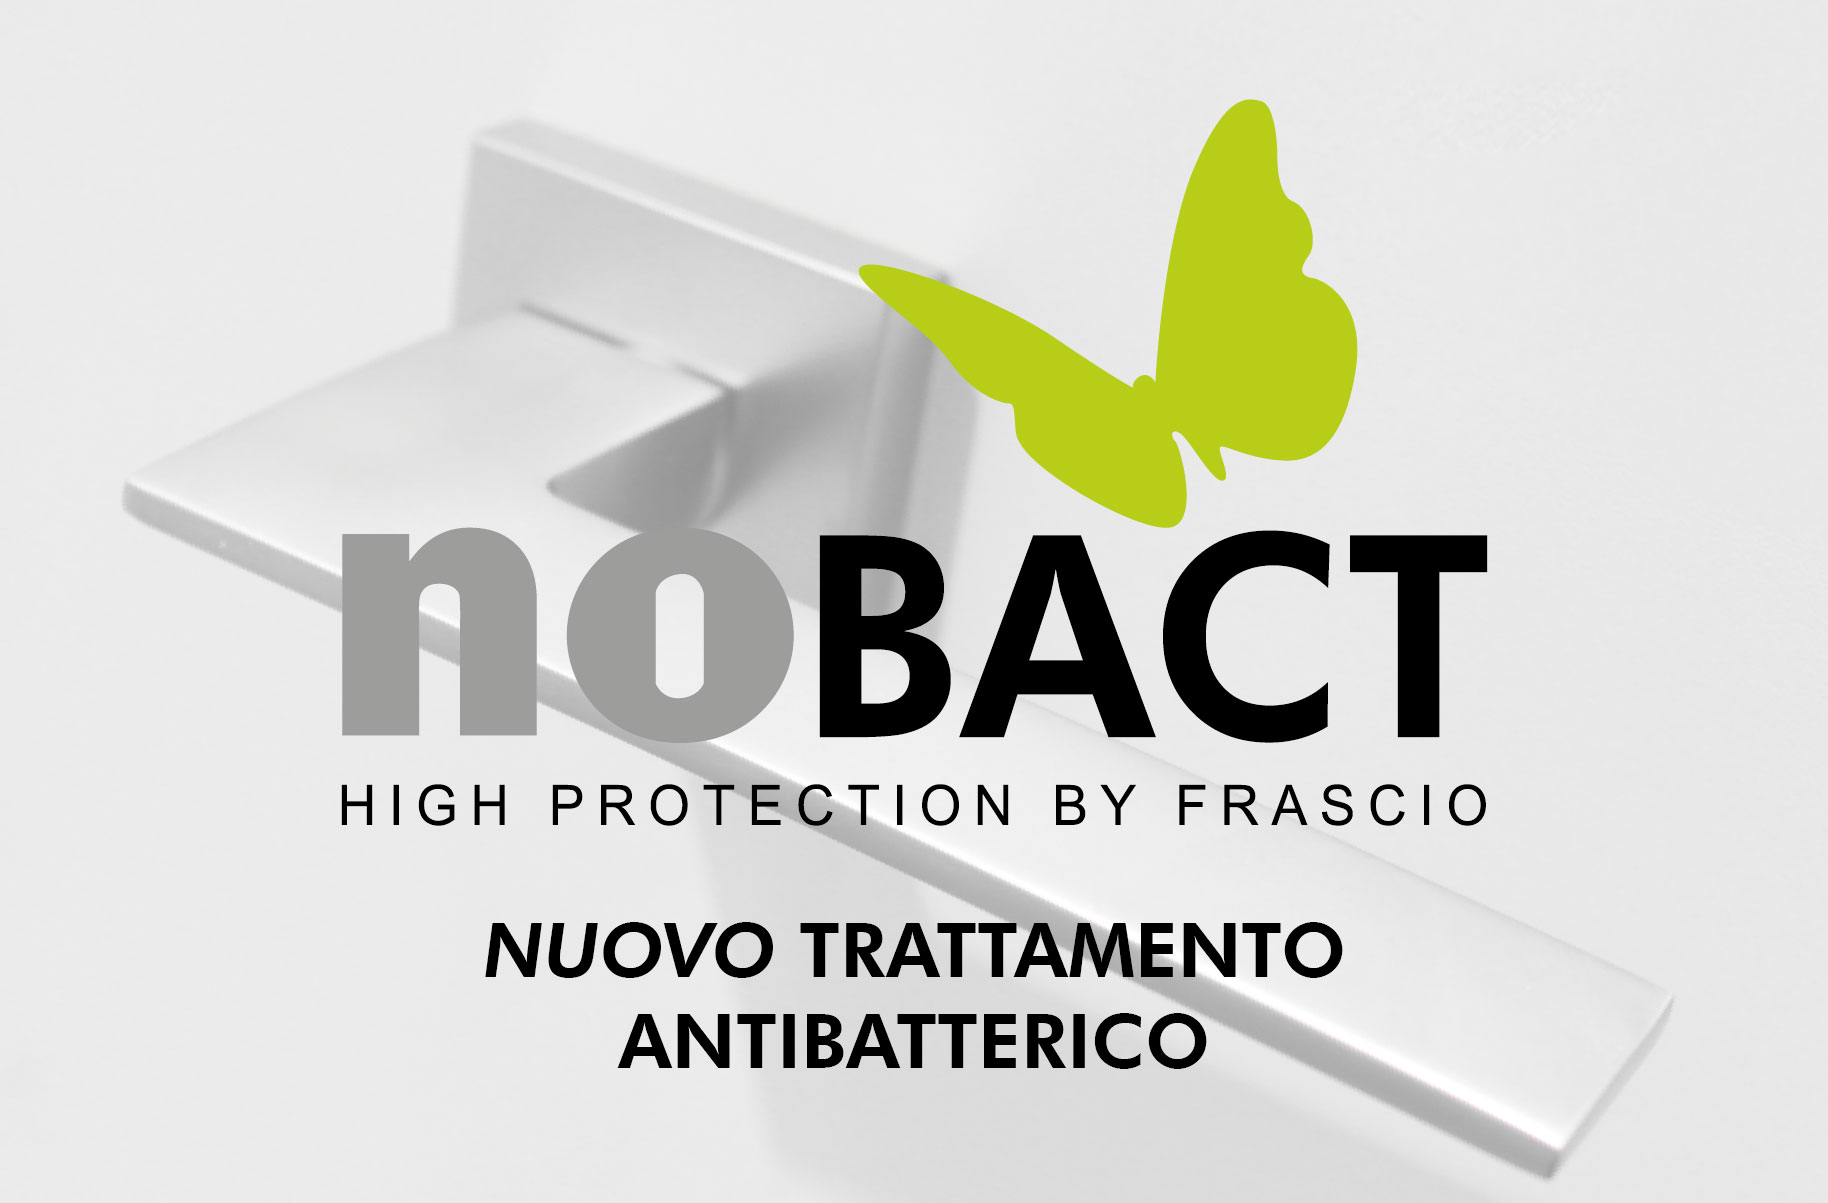 NO BACT, the new antibacterial treatment by Frascio